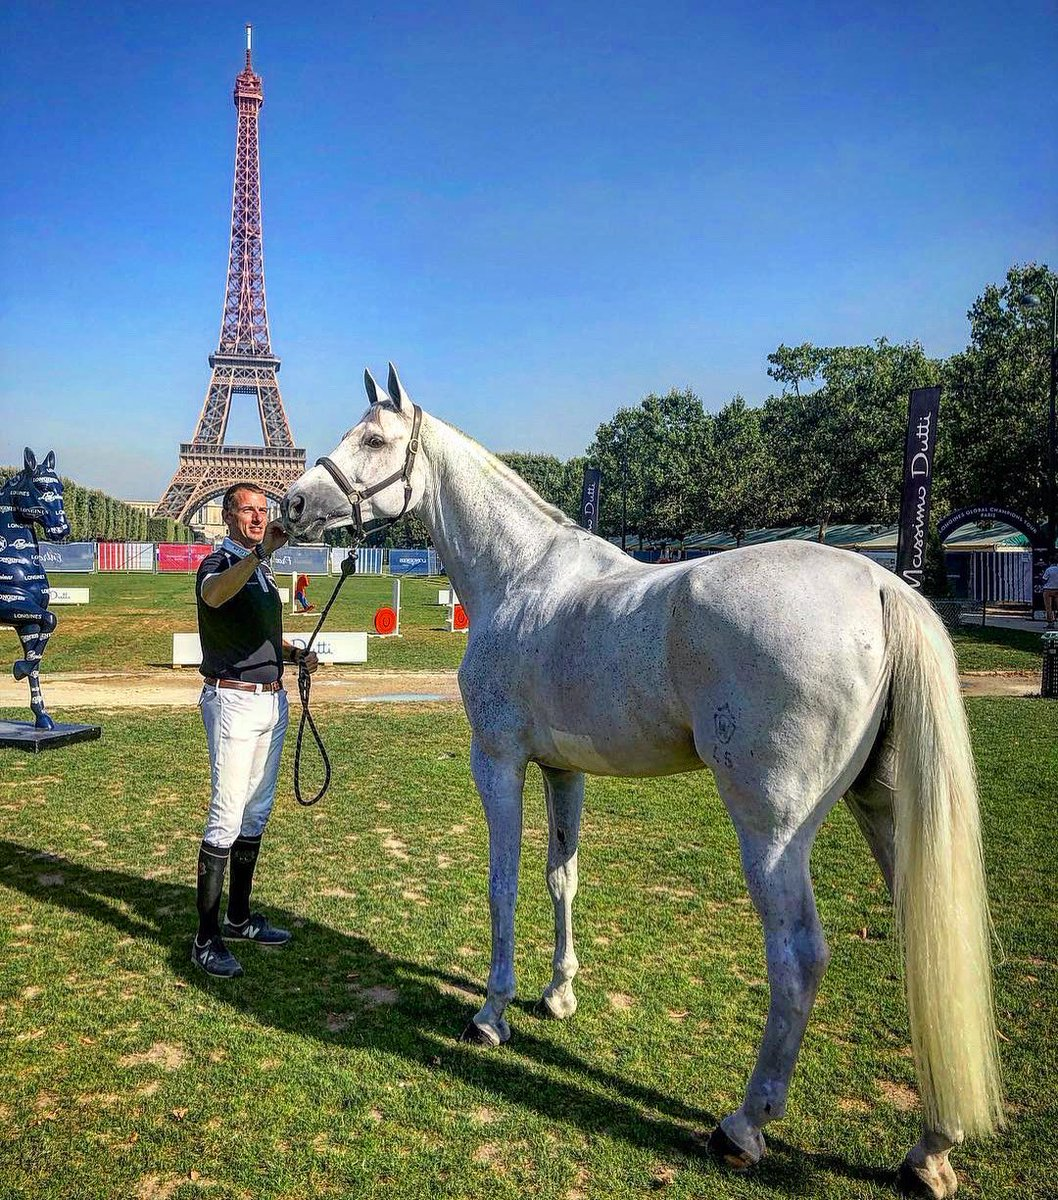 #TBT to that time we filmed with @gregorywathelet_official and the gorgeous Coree under the #EiffelTower in #Paris 😍 Which horse would you like us to feature on film next year?